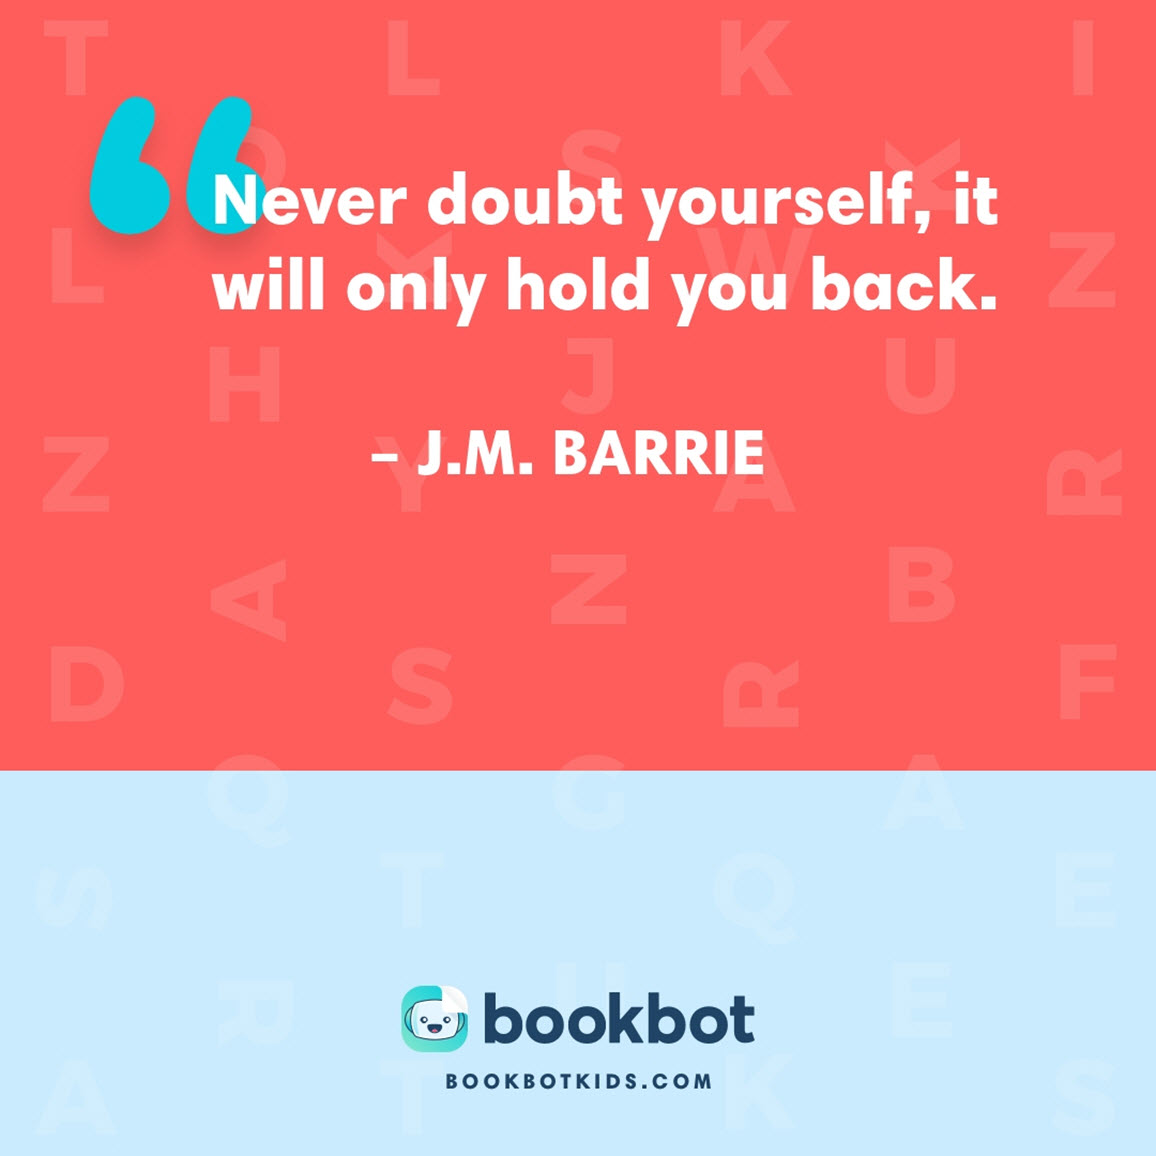 Never doubt yourself, it will only hold you back. – J.M. Barrie